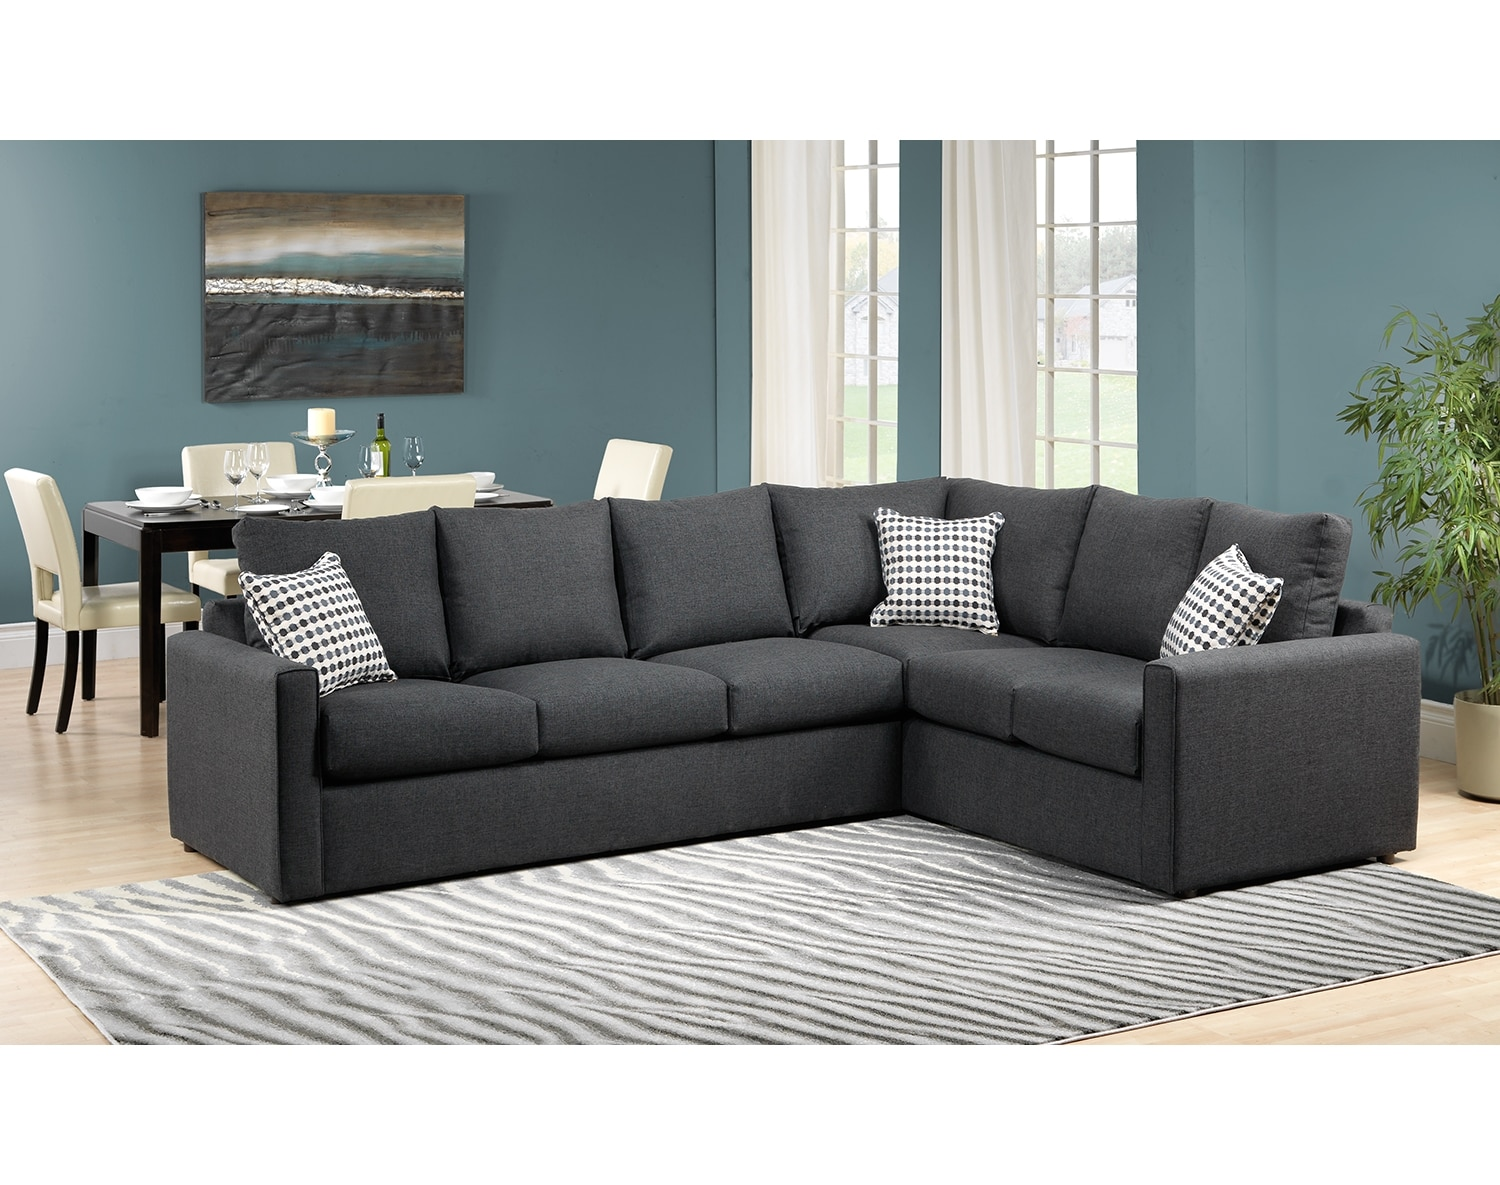 Athina 2 piece left facing queen sofa bed sectional for Sectional sofa bed hamilton